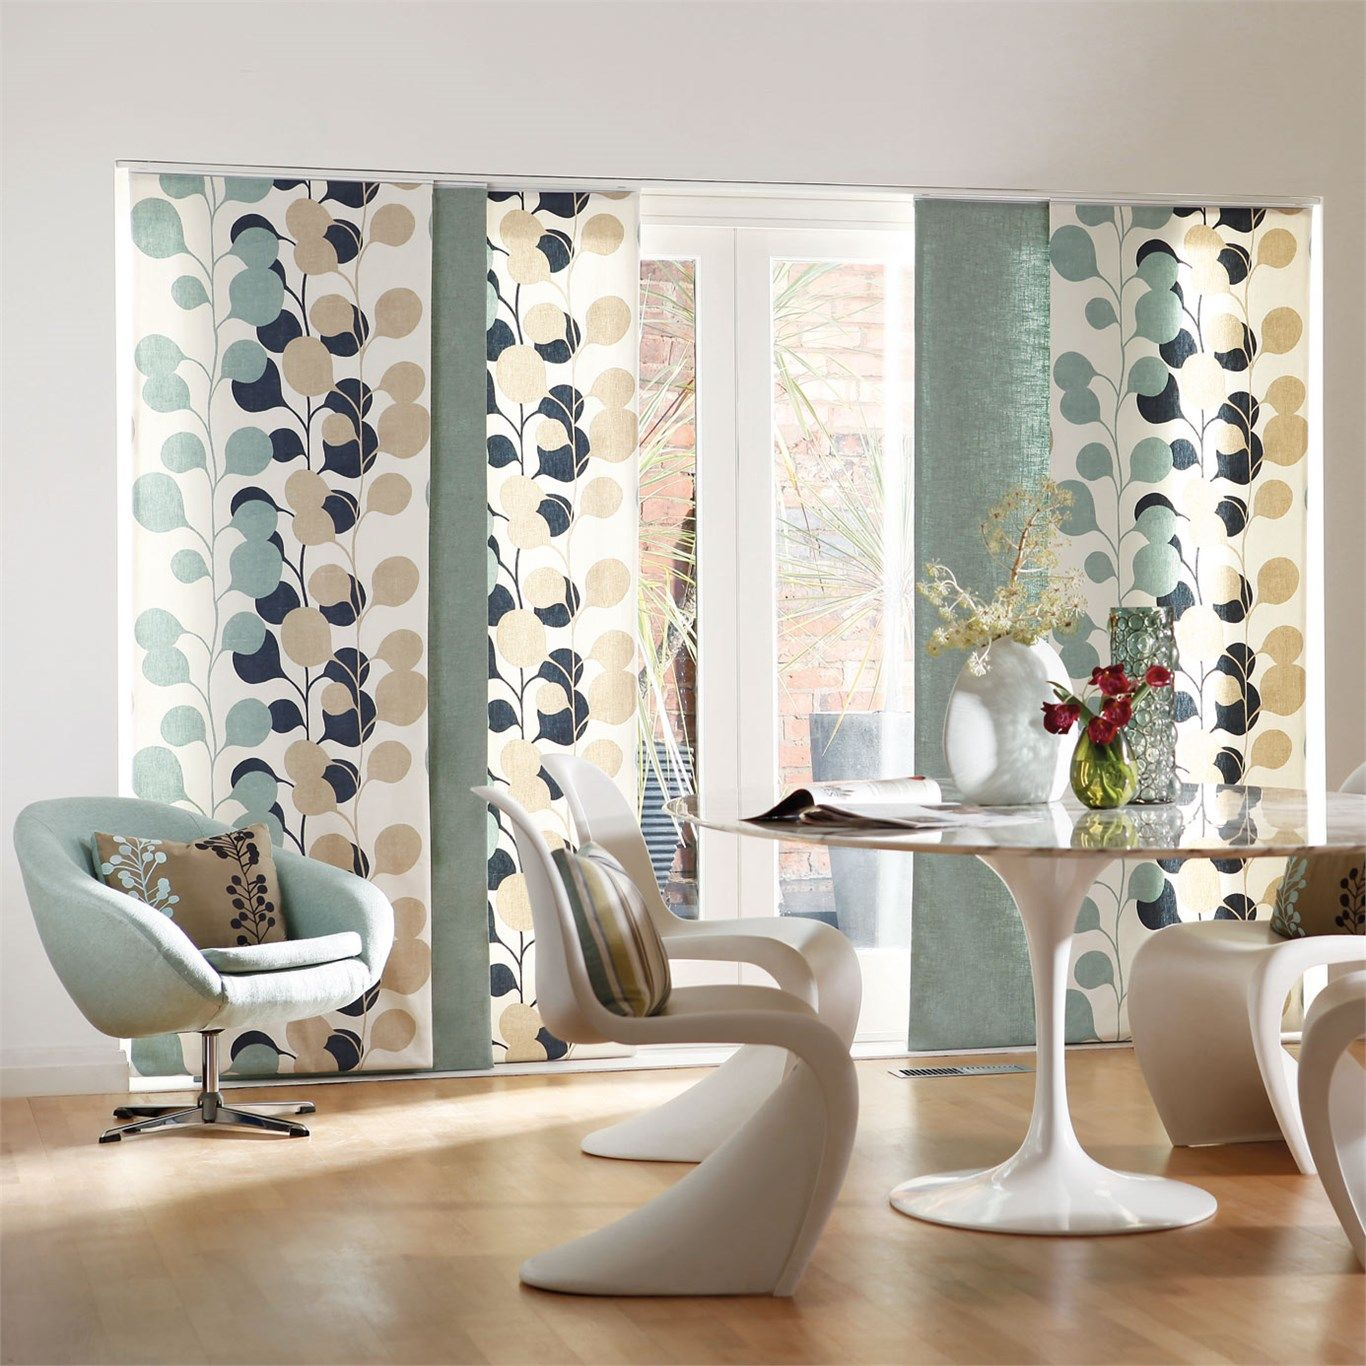 Products | Harlequin - Designer Fabrics and Wallpapers | Pod | Best ...